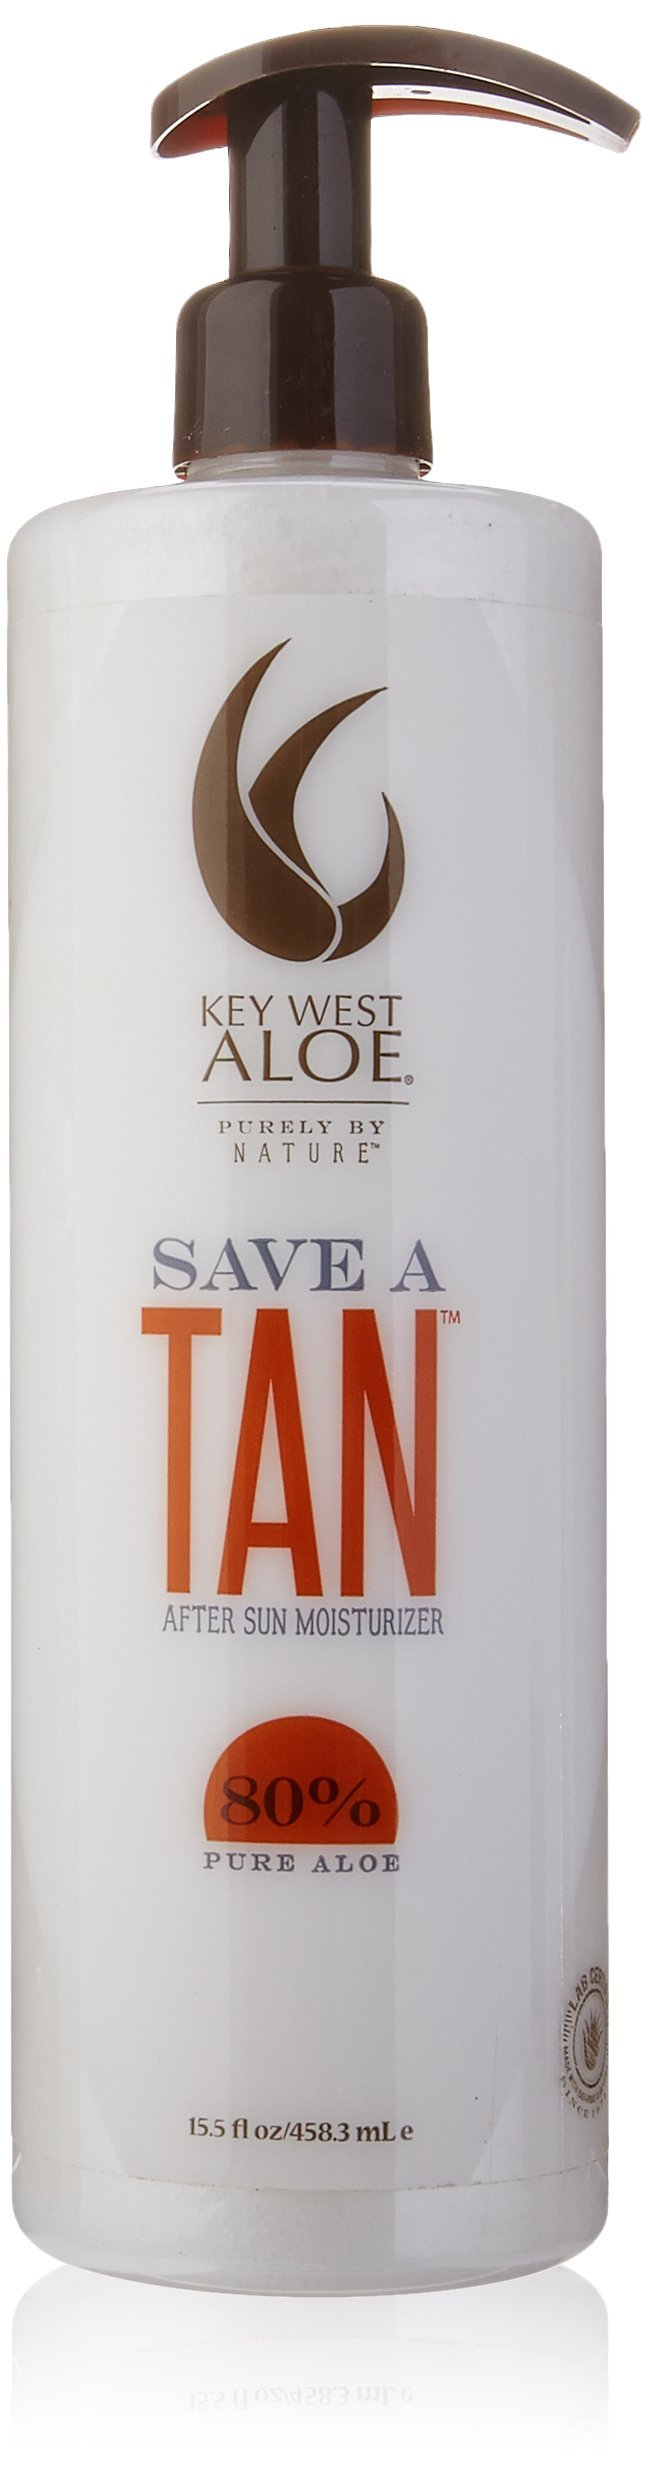 Key West Aloe Save a Tan - 15.5 oz by Key West Aloe (Image #1)